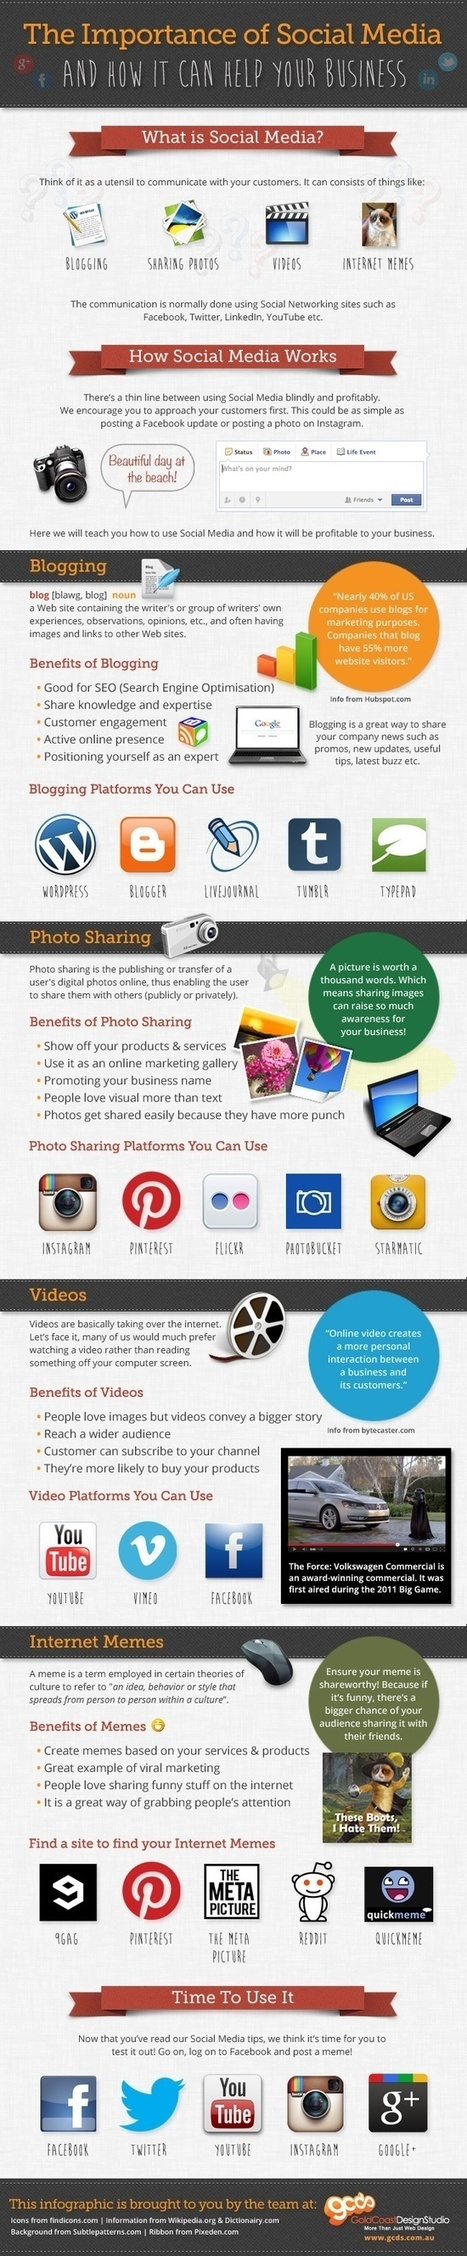 The importance of Social Media and how it can help your business | Webmarketing & Communication | Scoop.it